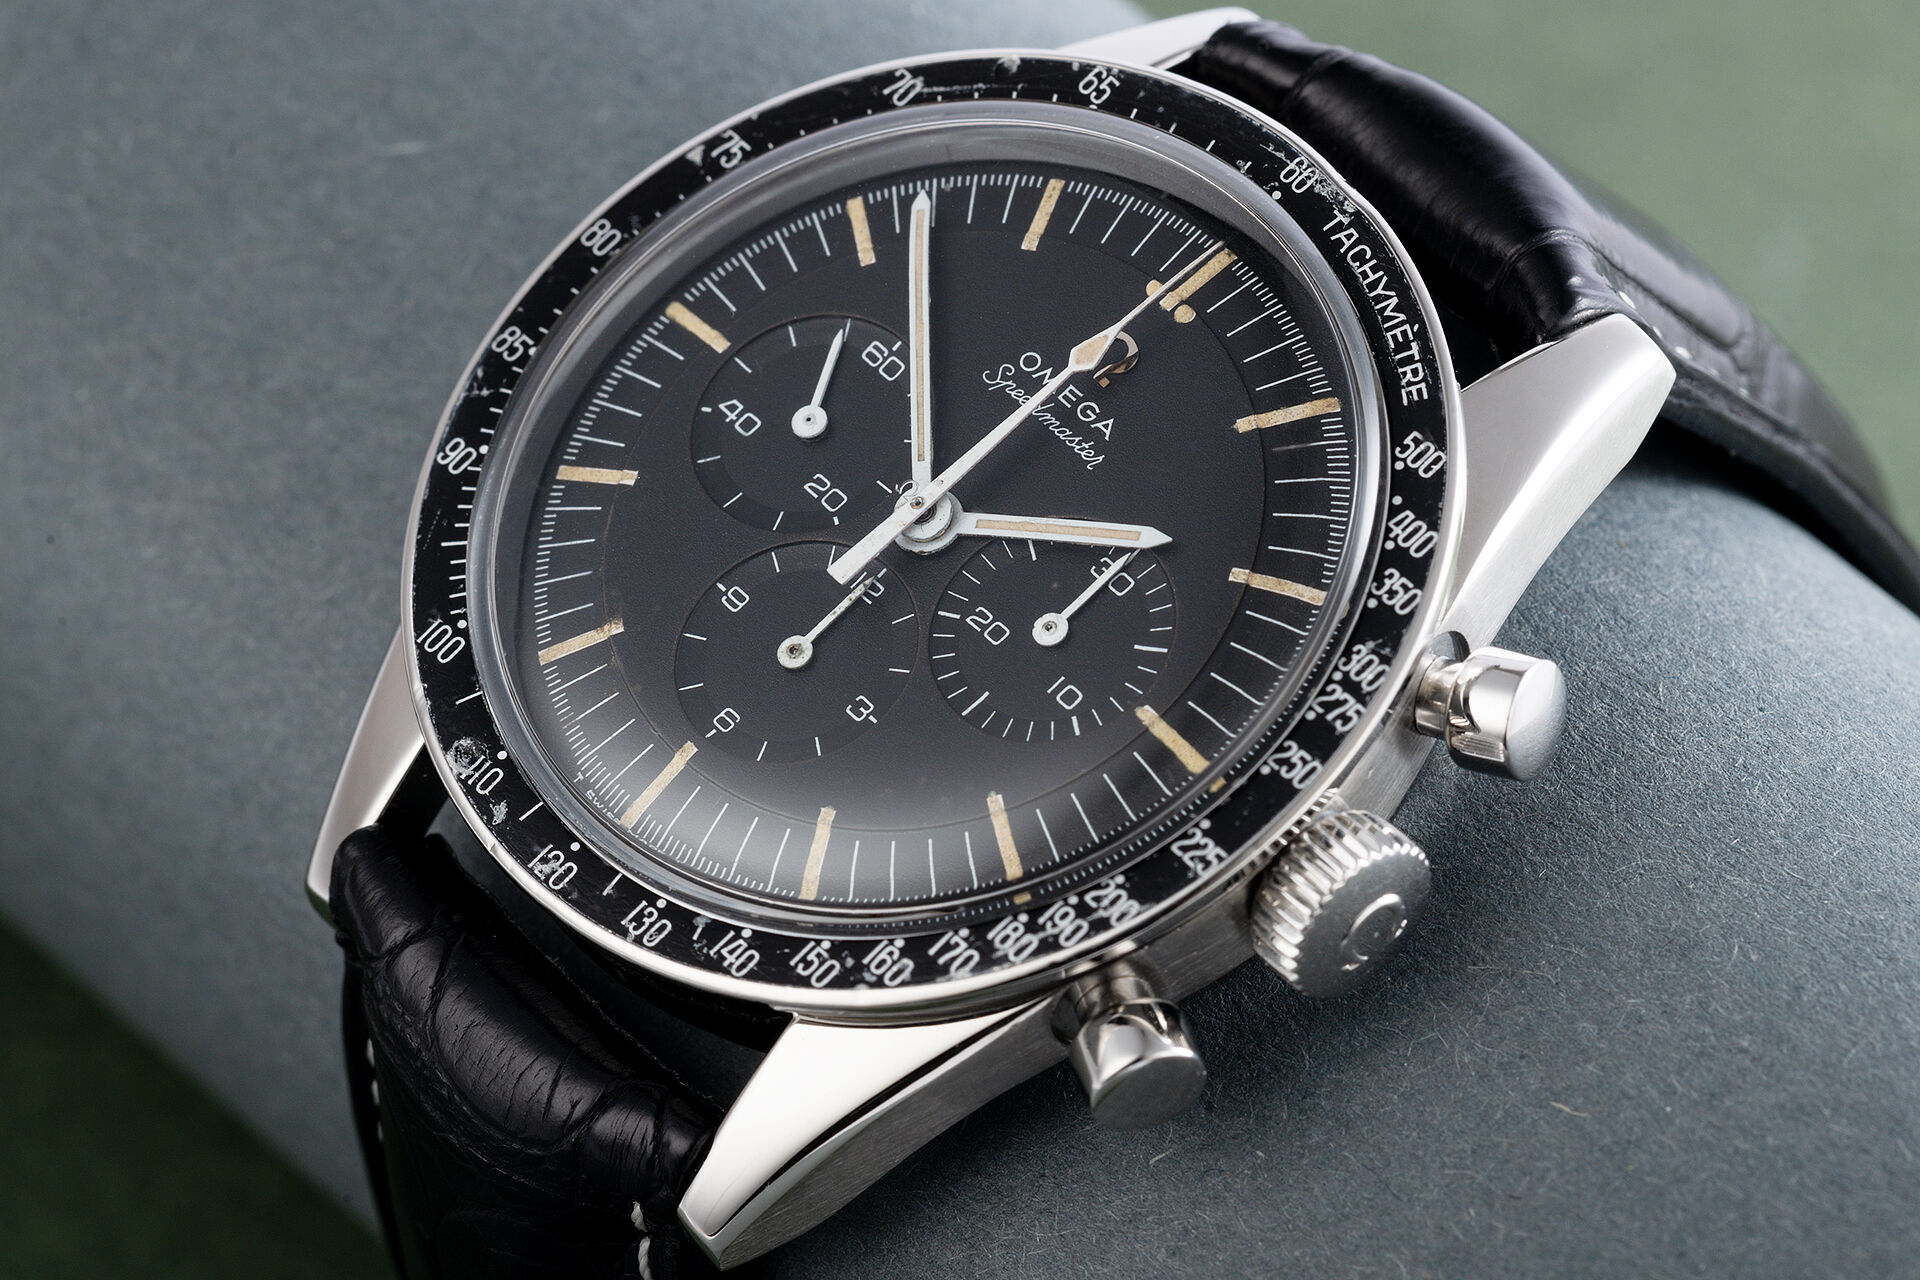 ref ST105.003-65 | 'Omega Extract from Archive' | Omega Speedmaster